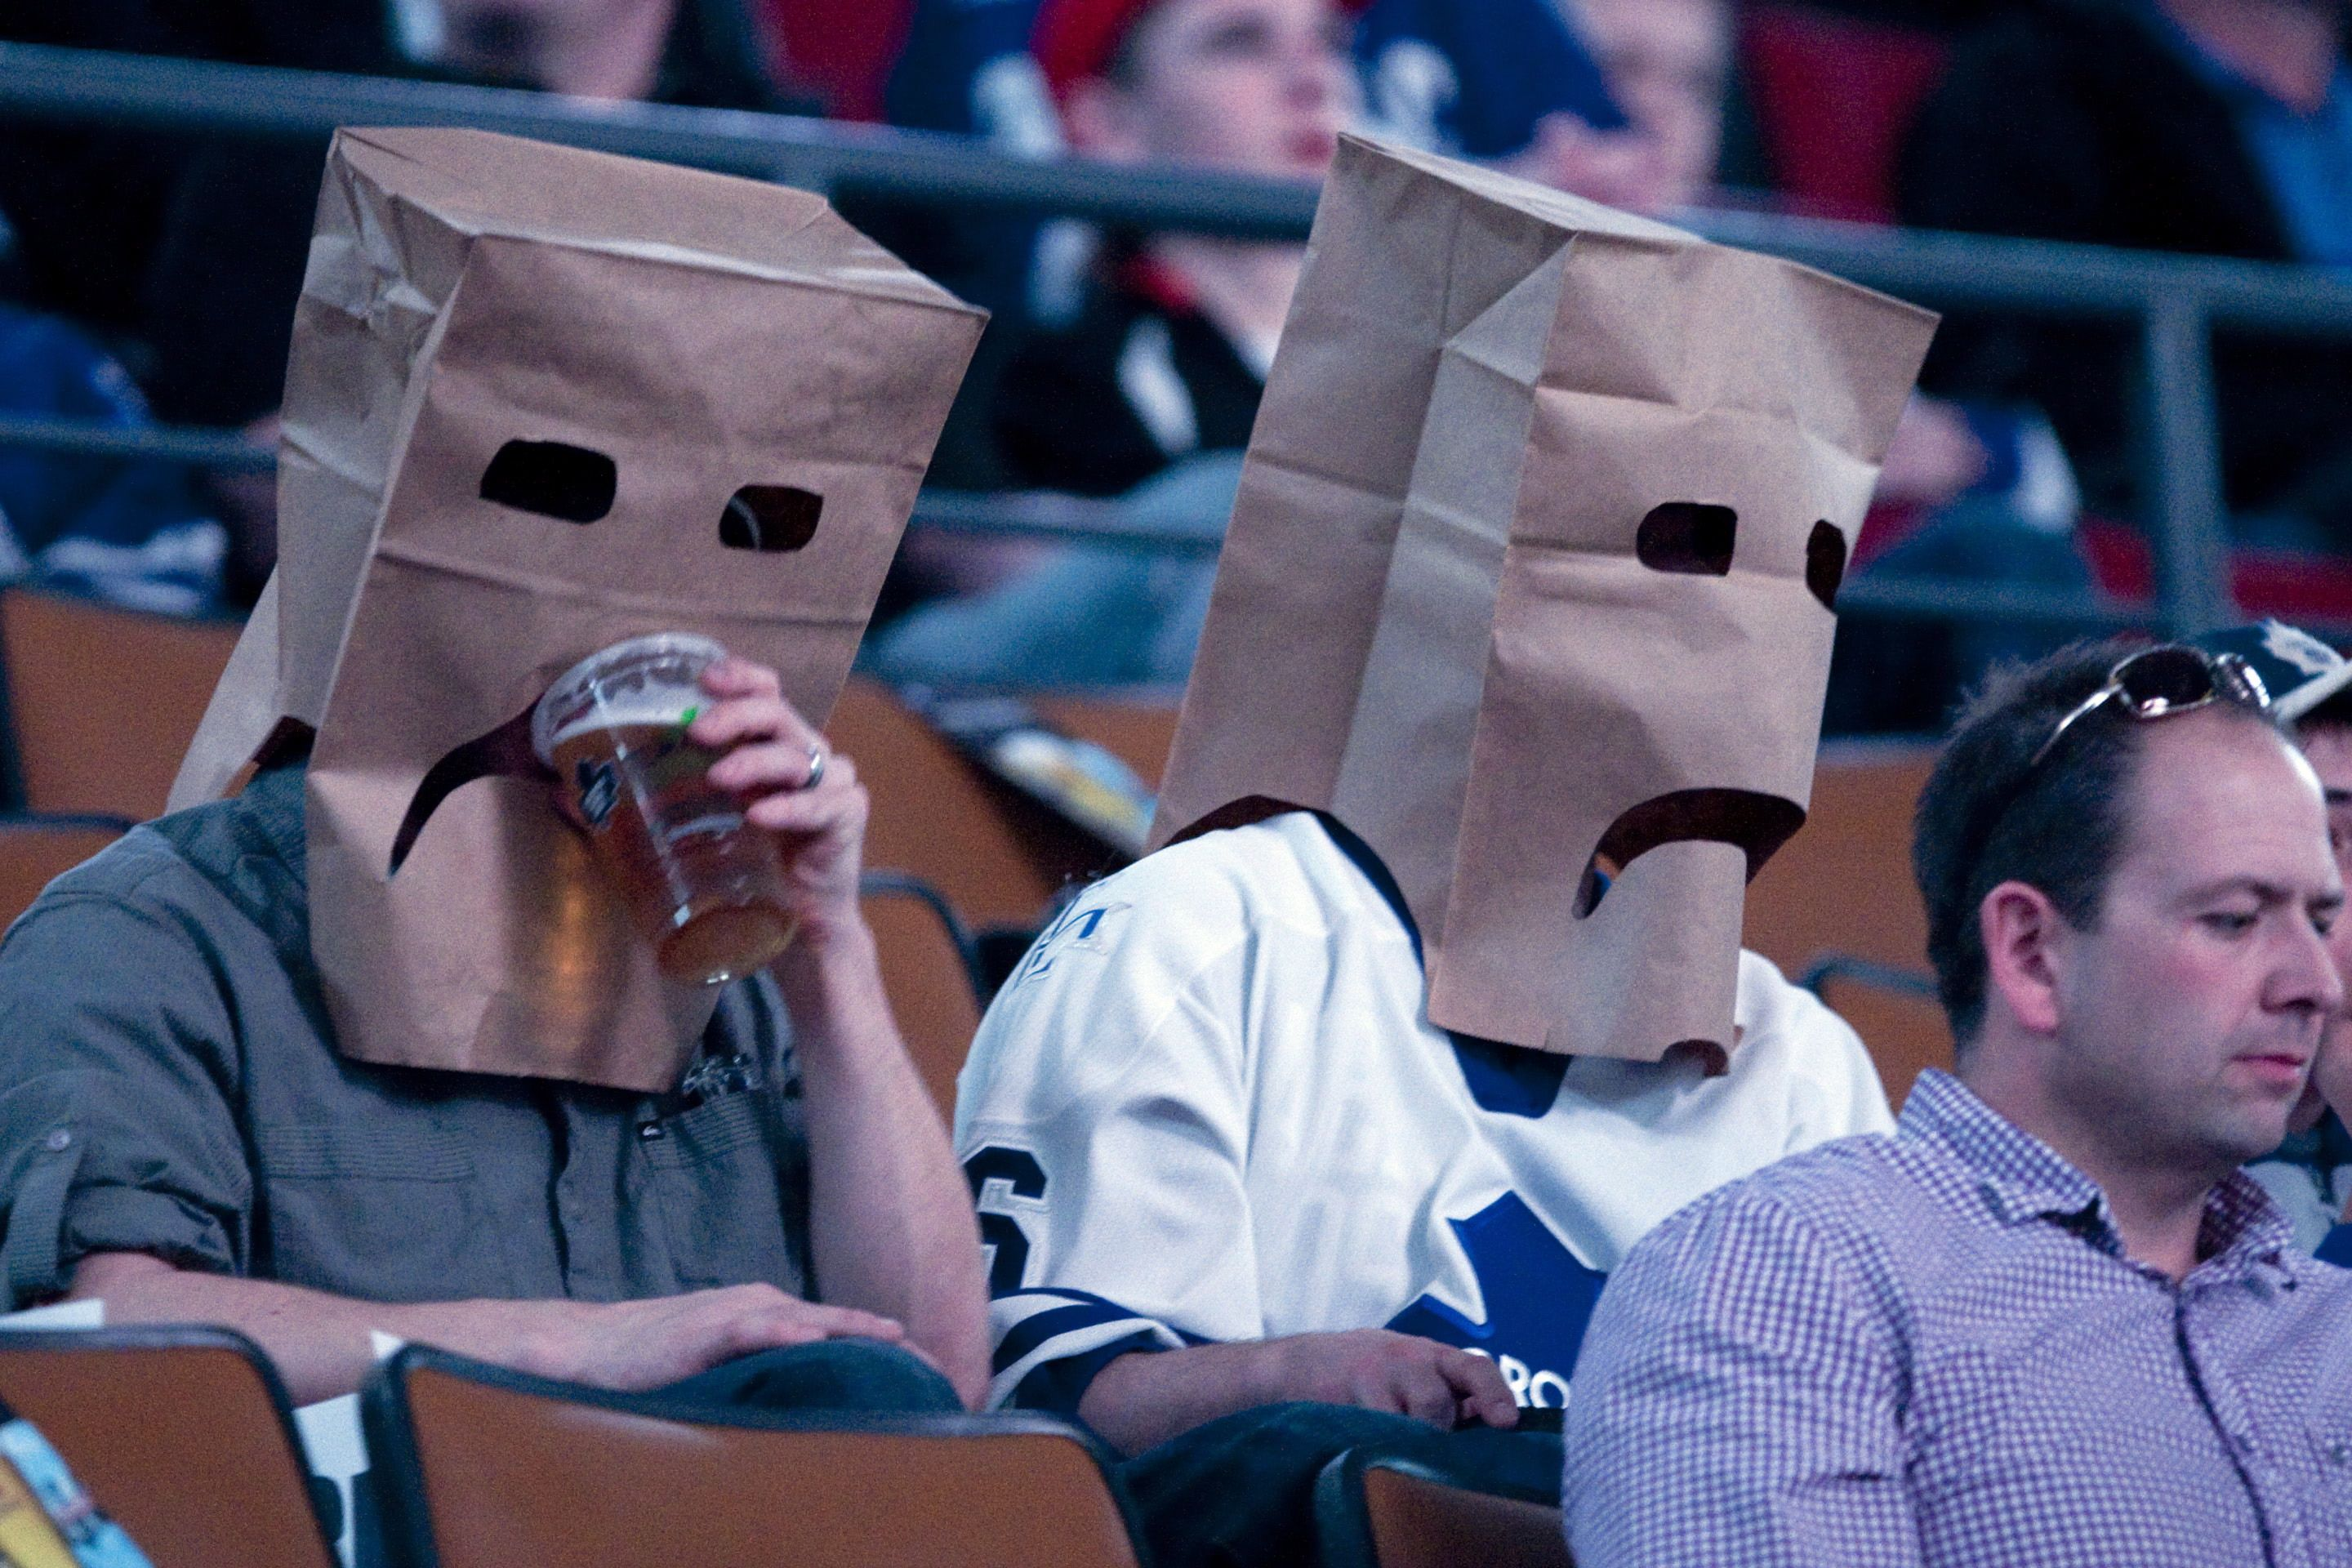 Toronto Maple Leafs Fans Wear Paper Bags Before The Maple Leafs Game Against New York Islanders Leafs Game Funny Sports Pictures Sports Pictures